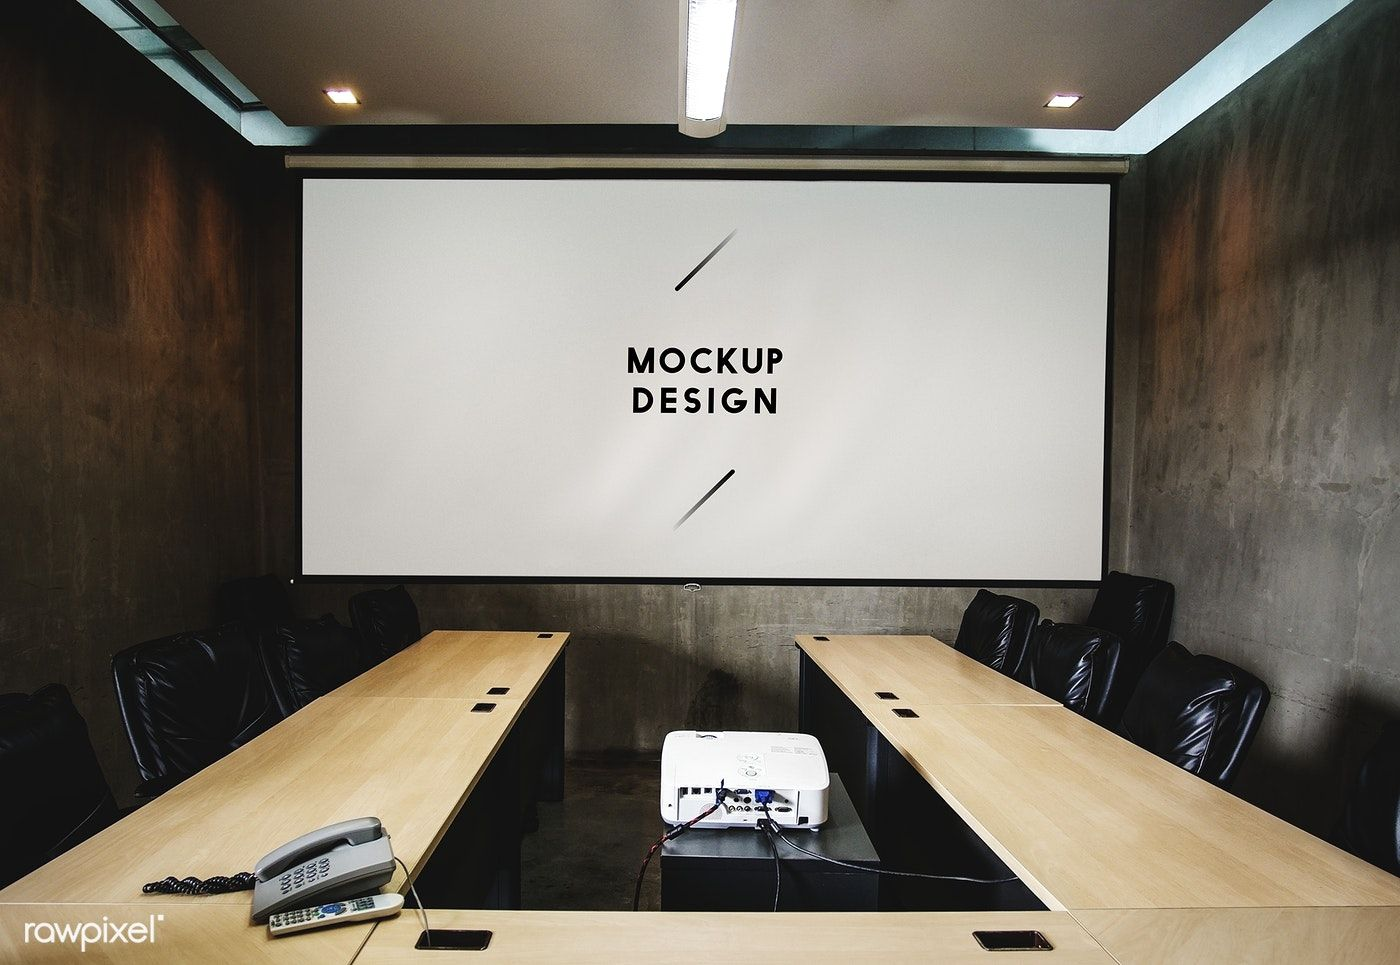 Blank White Projector Screen Mockup In A Meeting Room Free Image By Rawpixel Com Teddy Rawpixel Meeting Room Dining Room Small Conference Room Projector